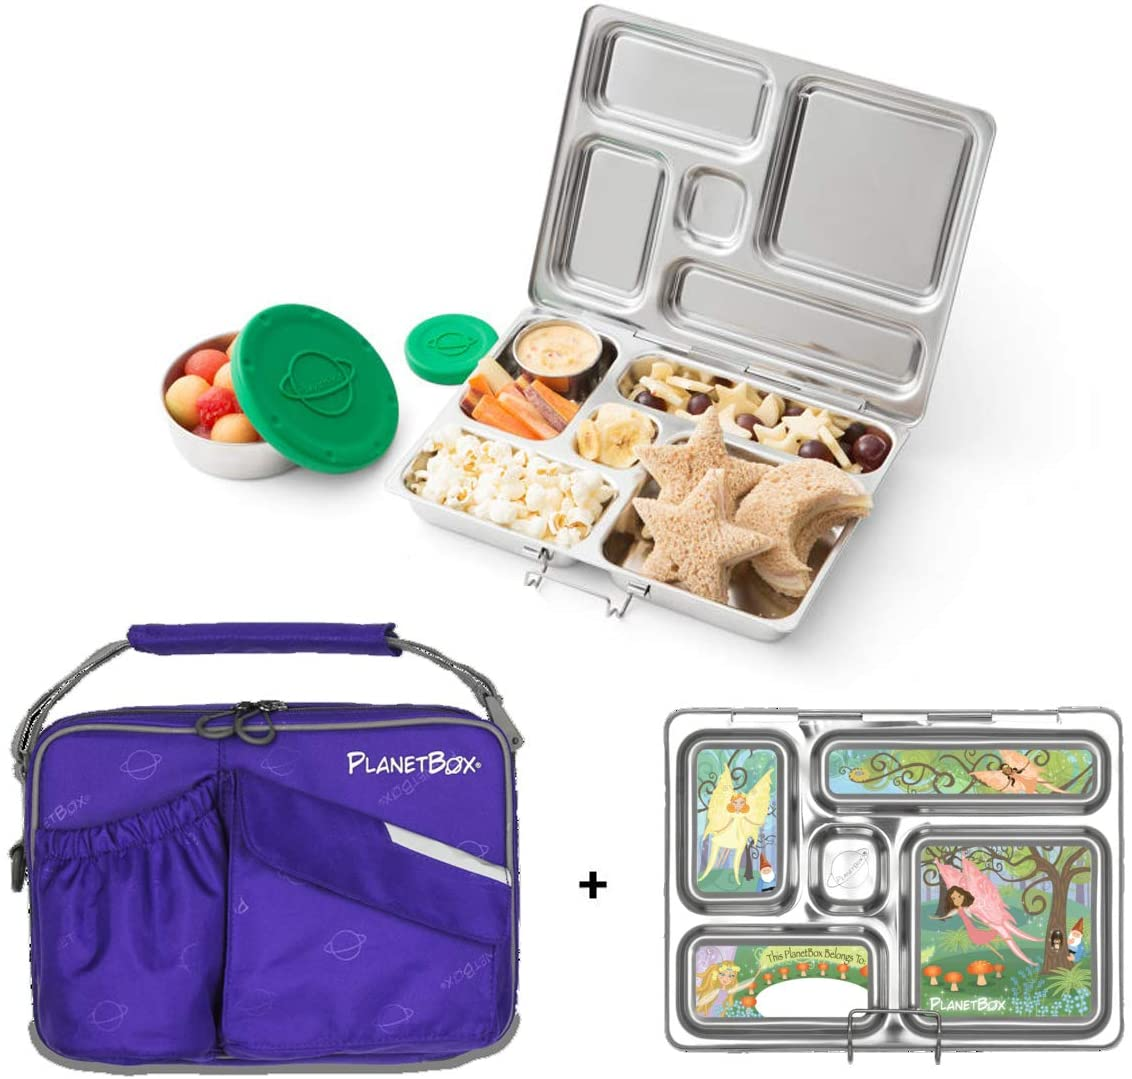 ROVER Eco-Friendly Stainless Steel Bento Lunch Box